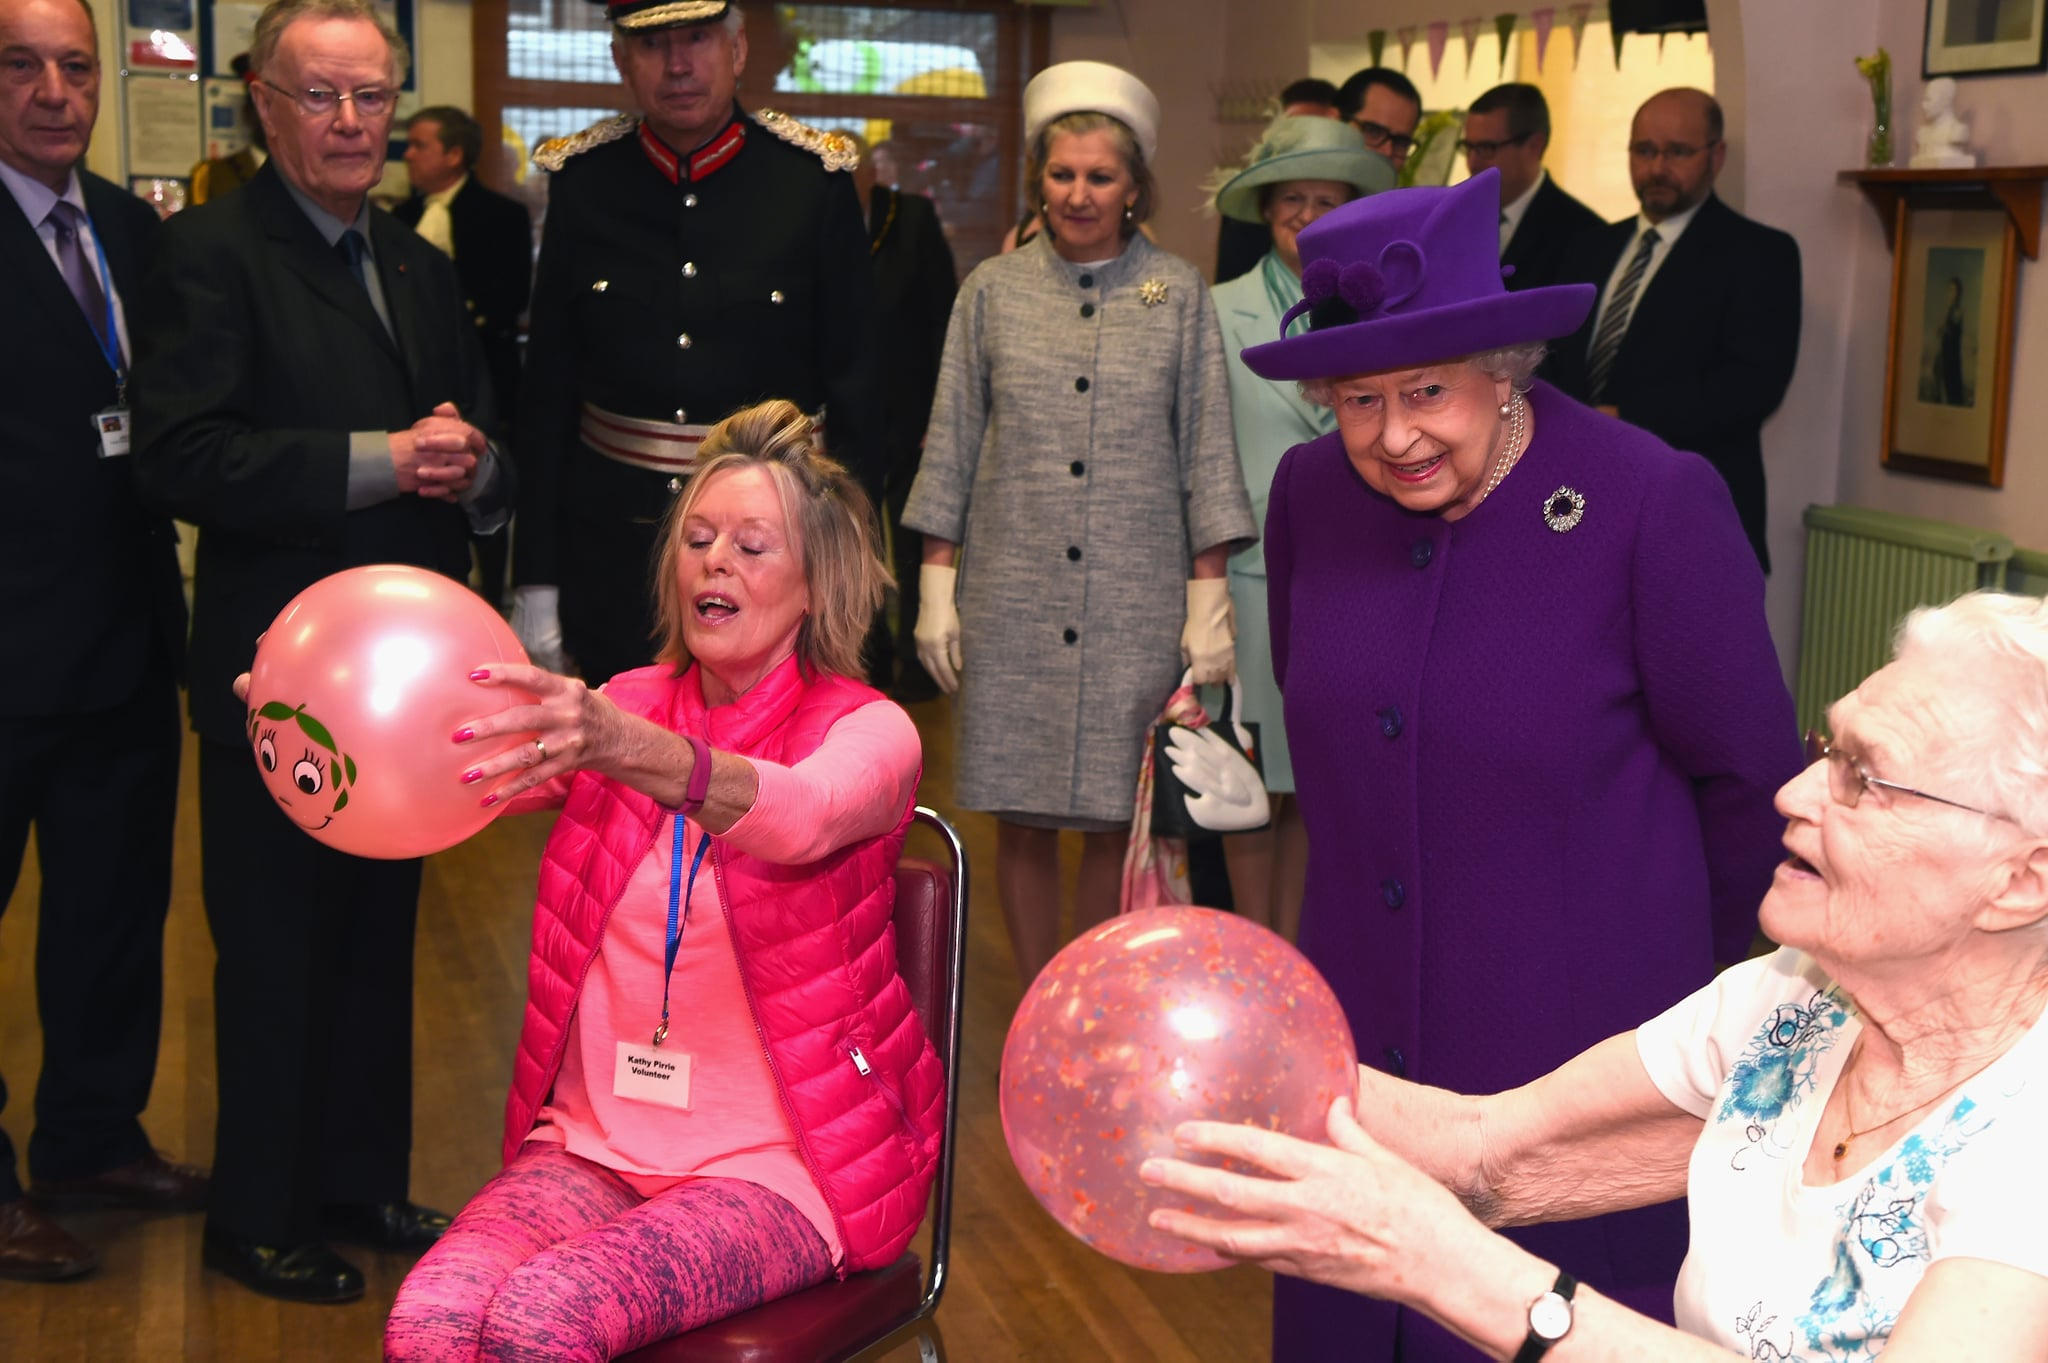 WINDSOR, ENGLAND - APRIL 12:  Queen Elizabeth II visits the King George VI Day Centre on April 12, 2018 in Windsor, England. The Queen toured the facility and met some of the local residents who use it.  (Photo by Eamonn M. McCormack - WPA Pool/Getty Images)